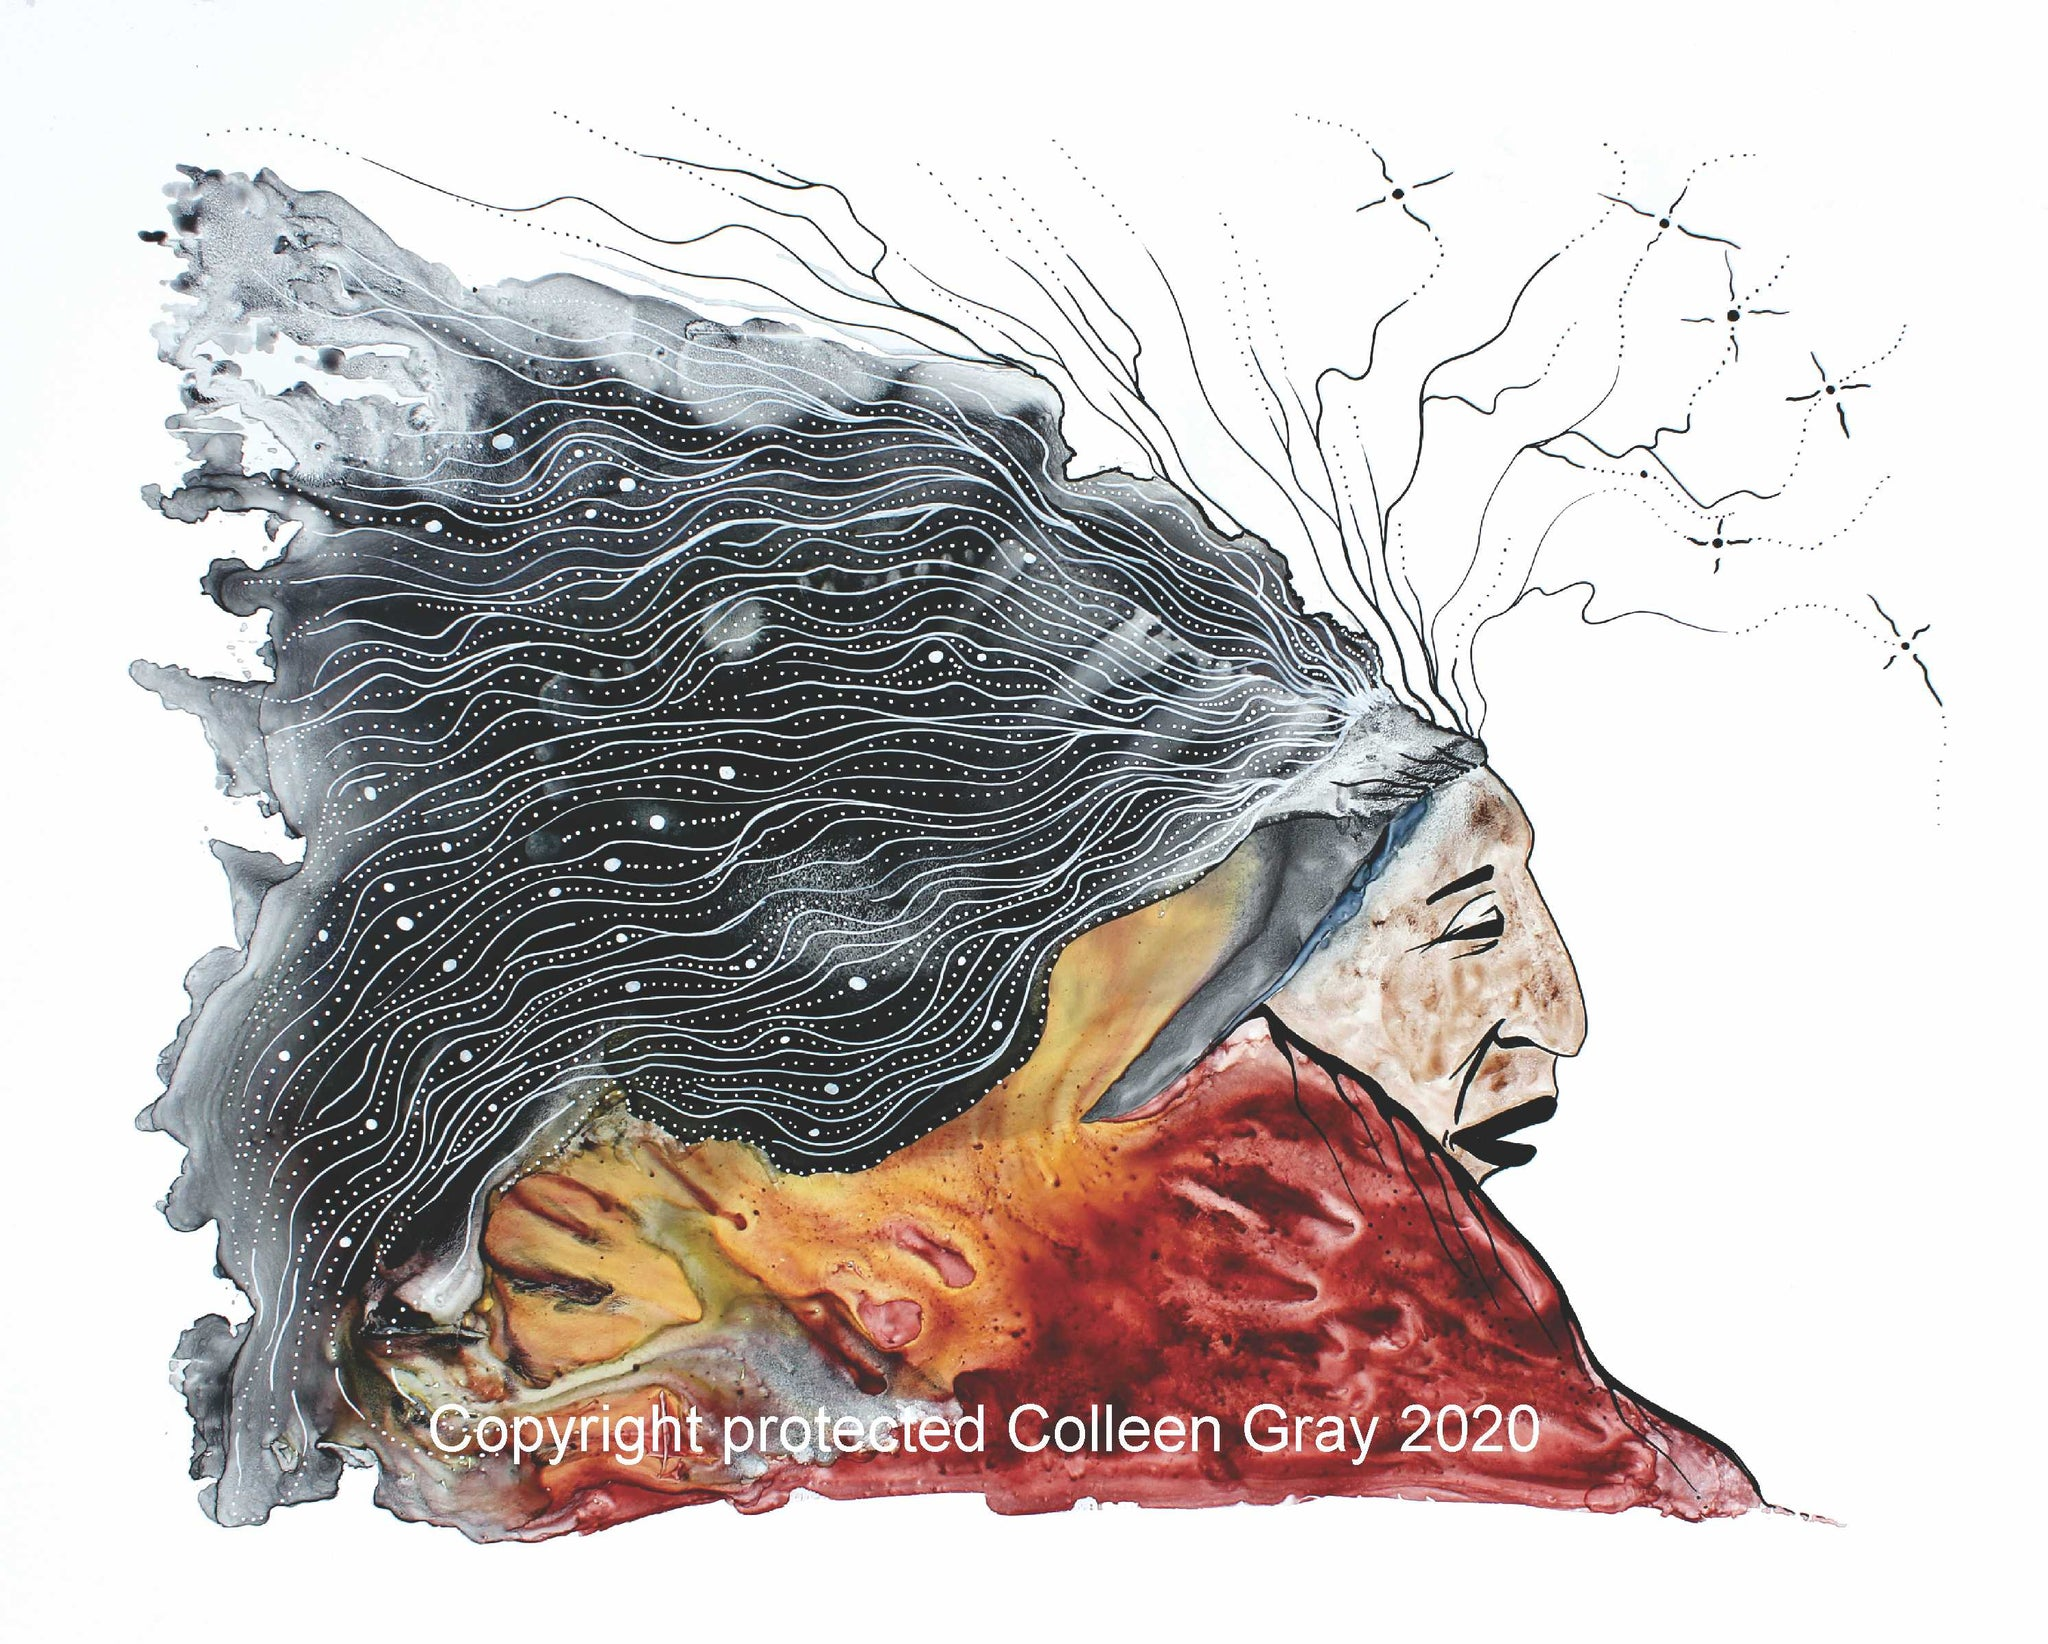 Image of Title: Old Man Dreams 16x20 archival print by Metis Artist Colleen Gray Indigenous Canadian Art Work. For sale at https://artforaidshop.ca